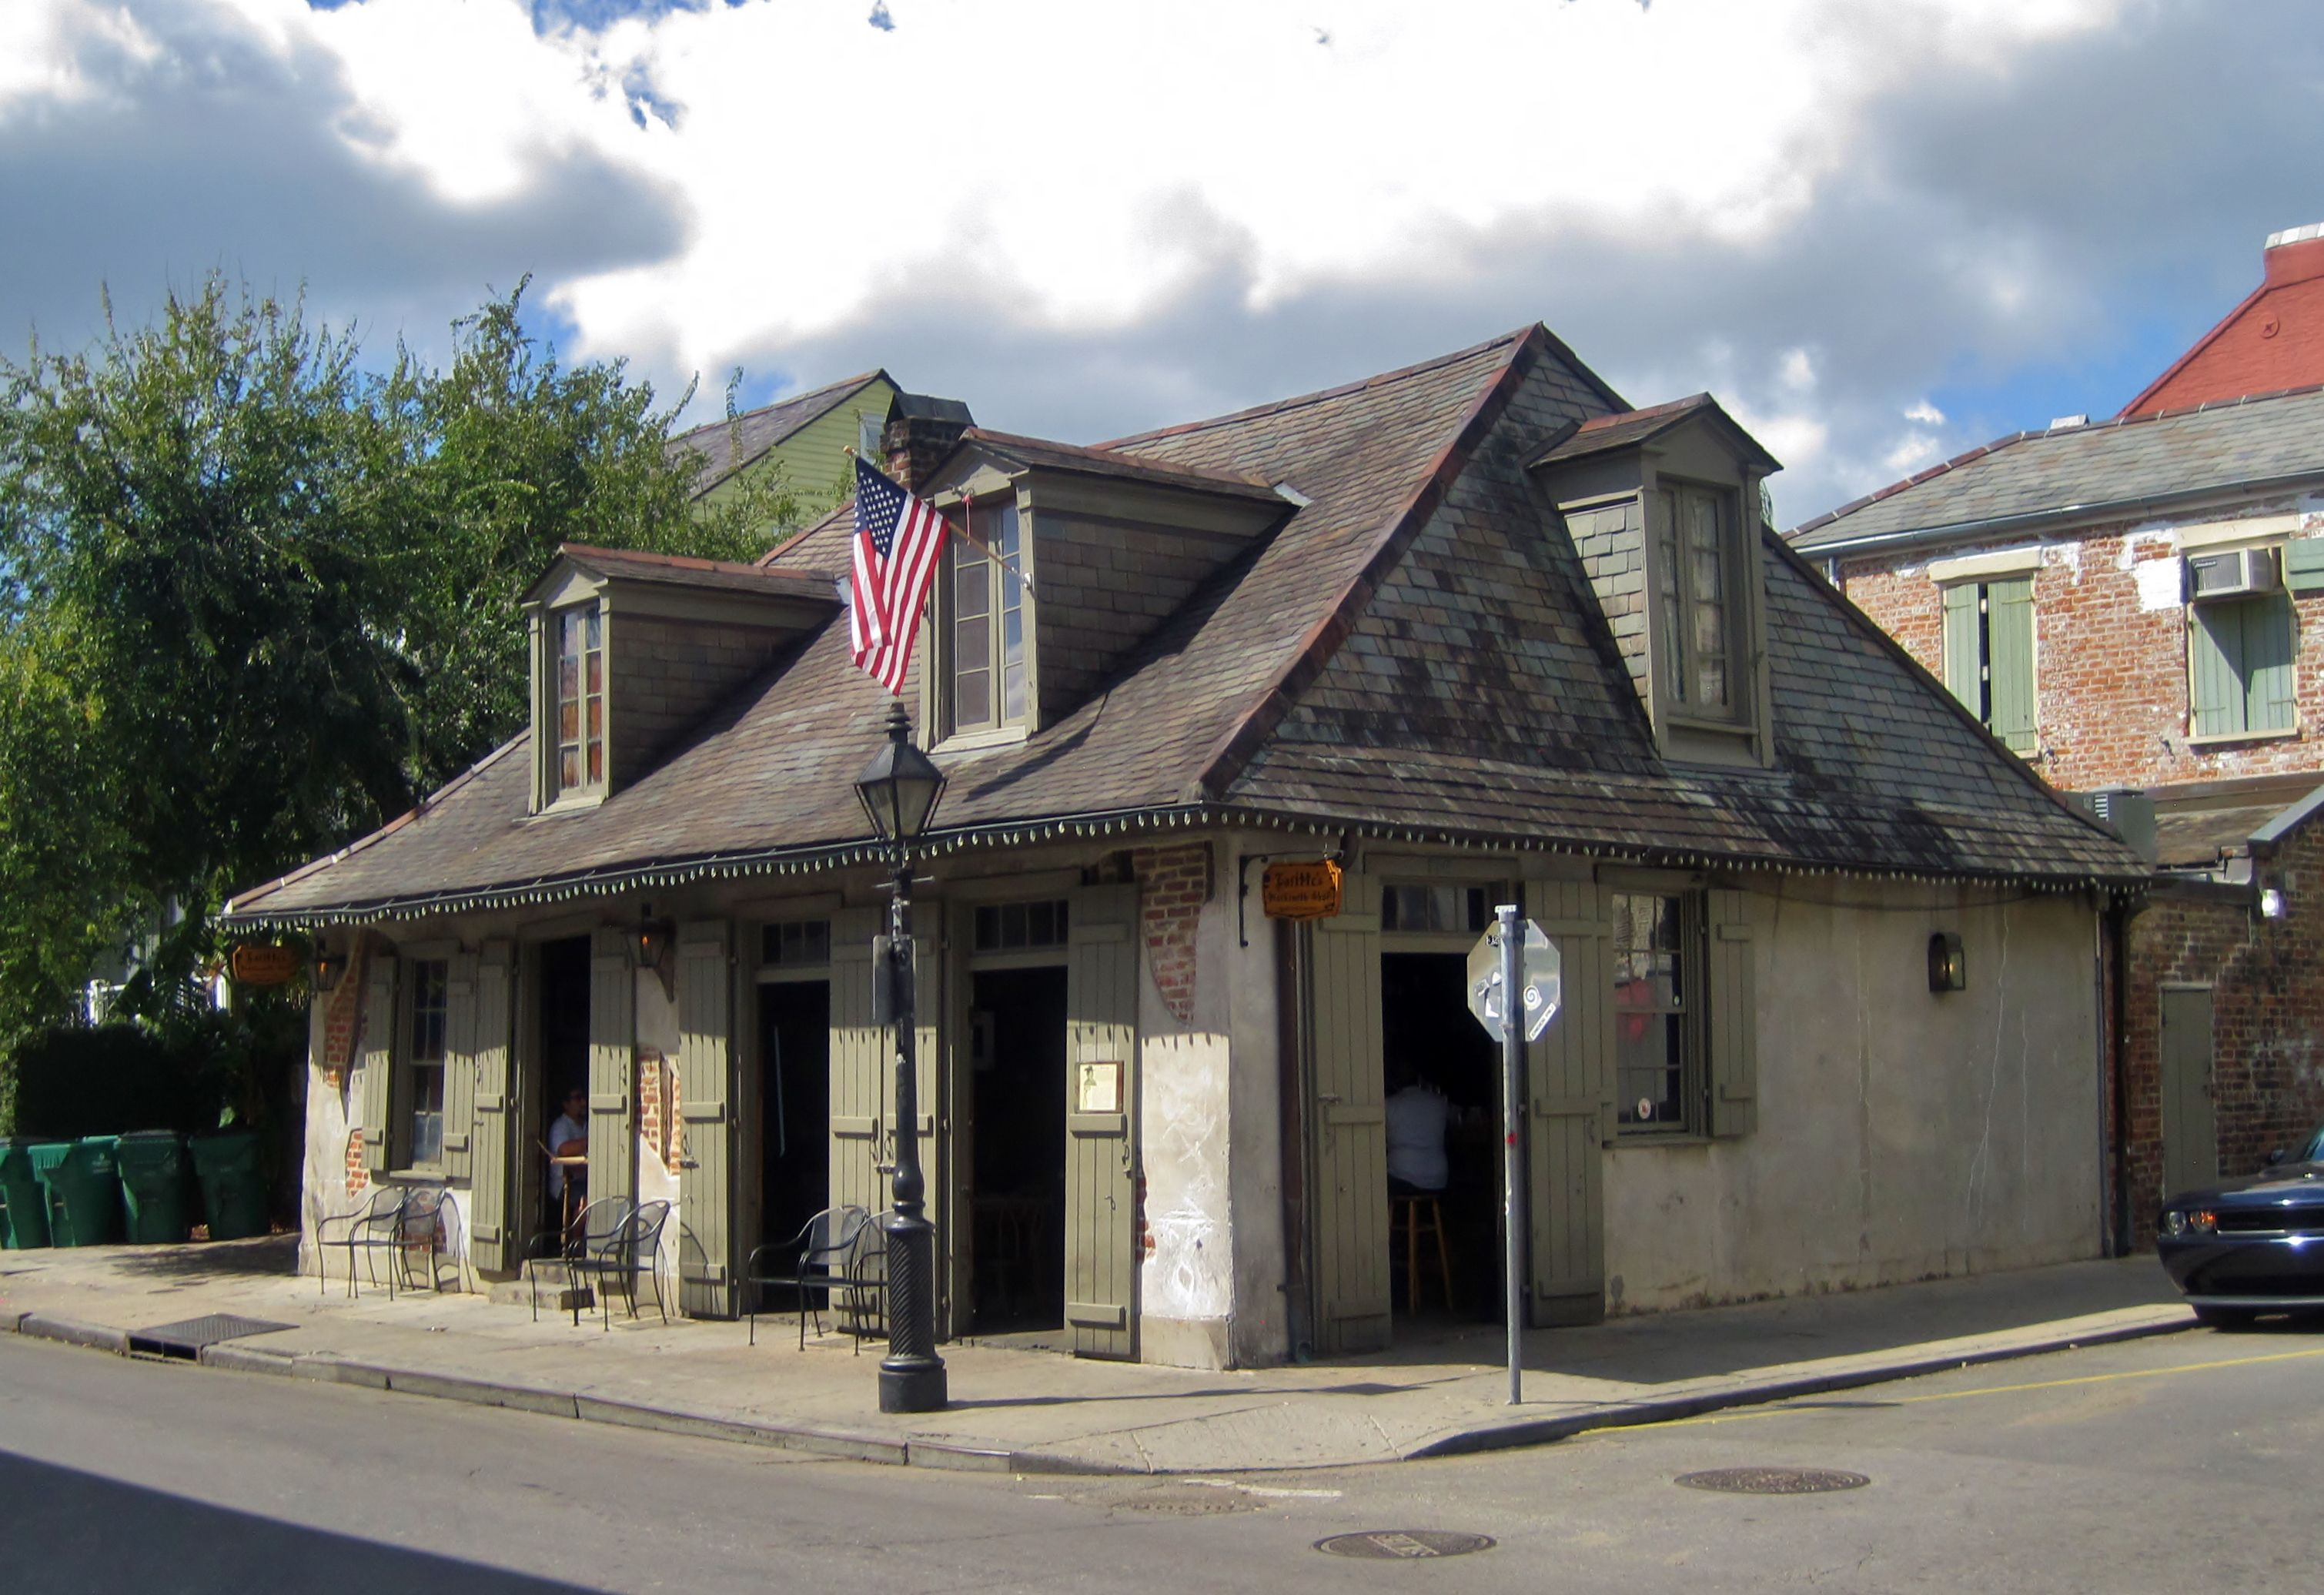 Exterior view of Lafitte's Blacksmith Shop in New Orleans, a national landmark (1761).